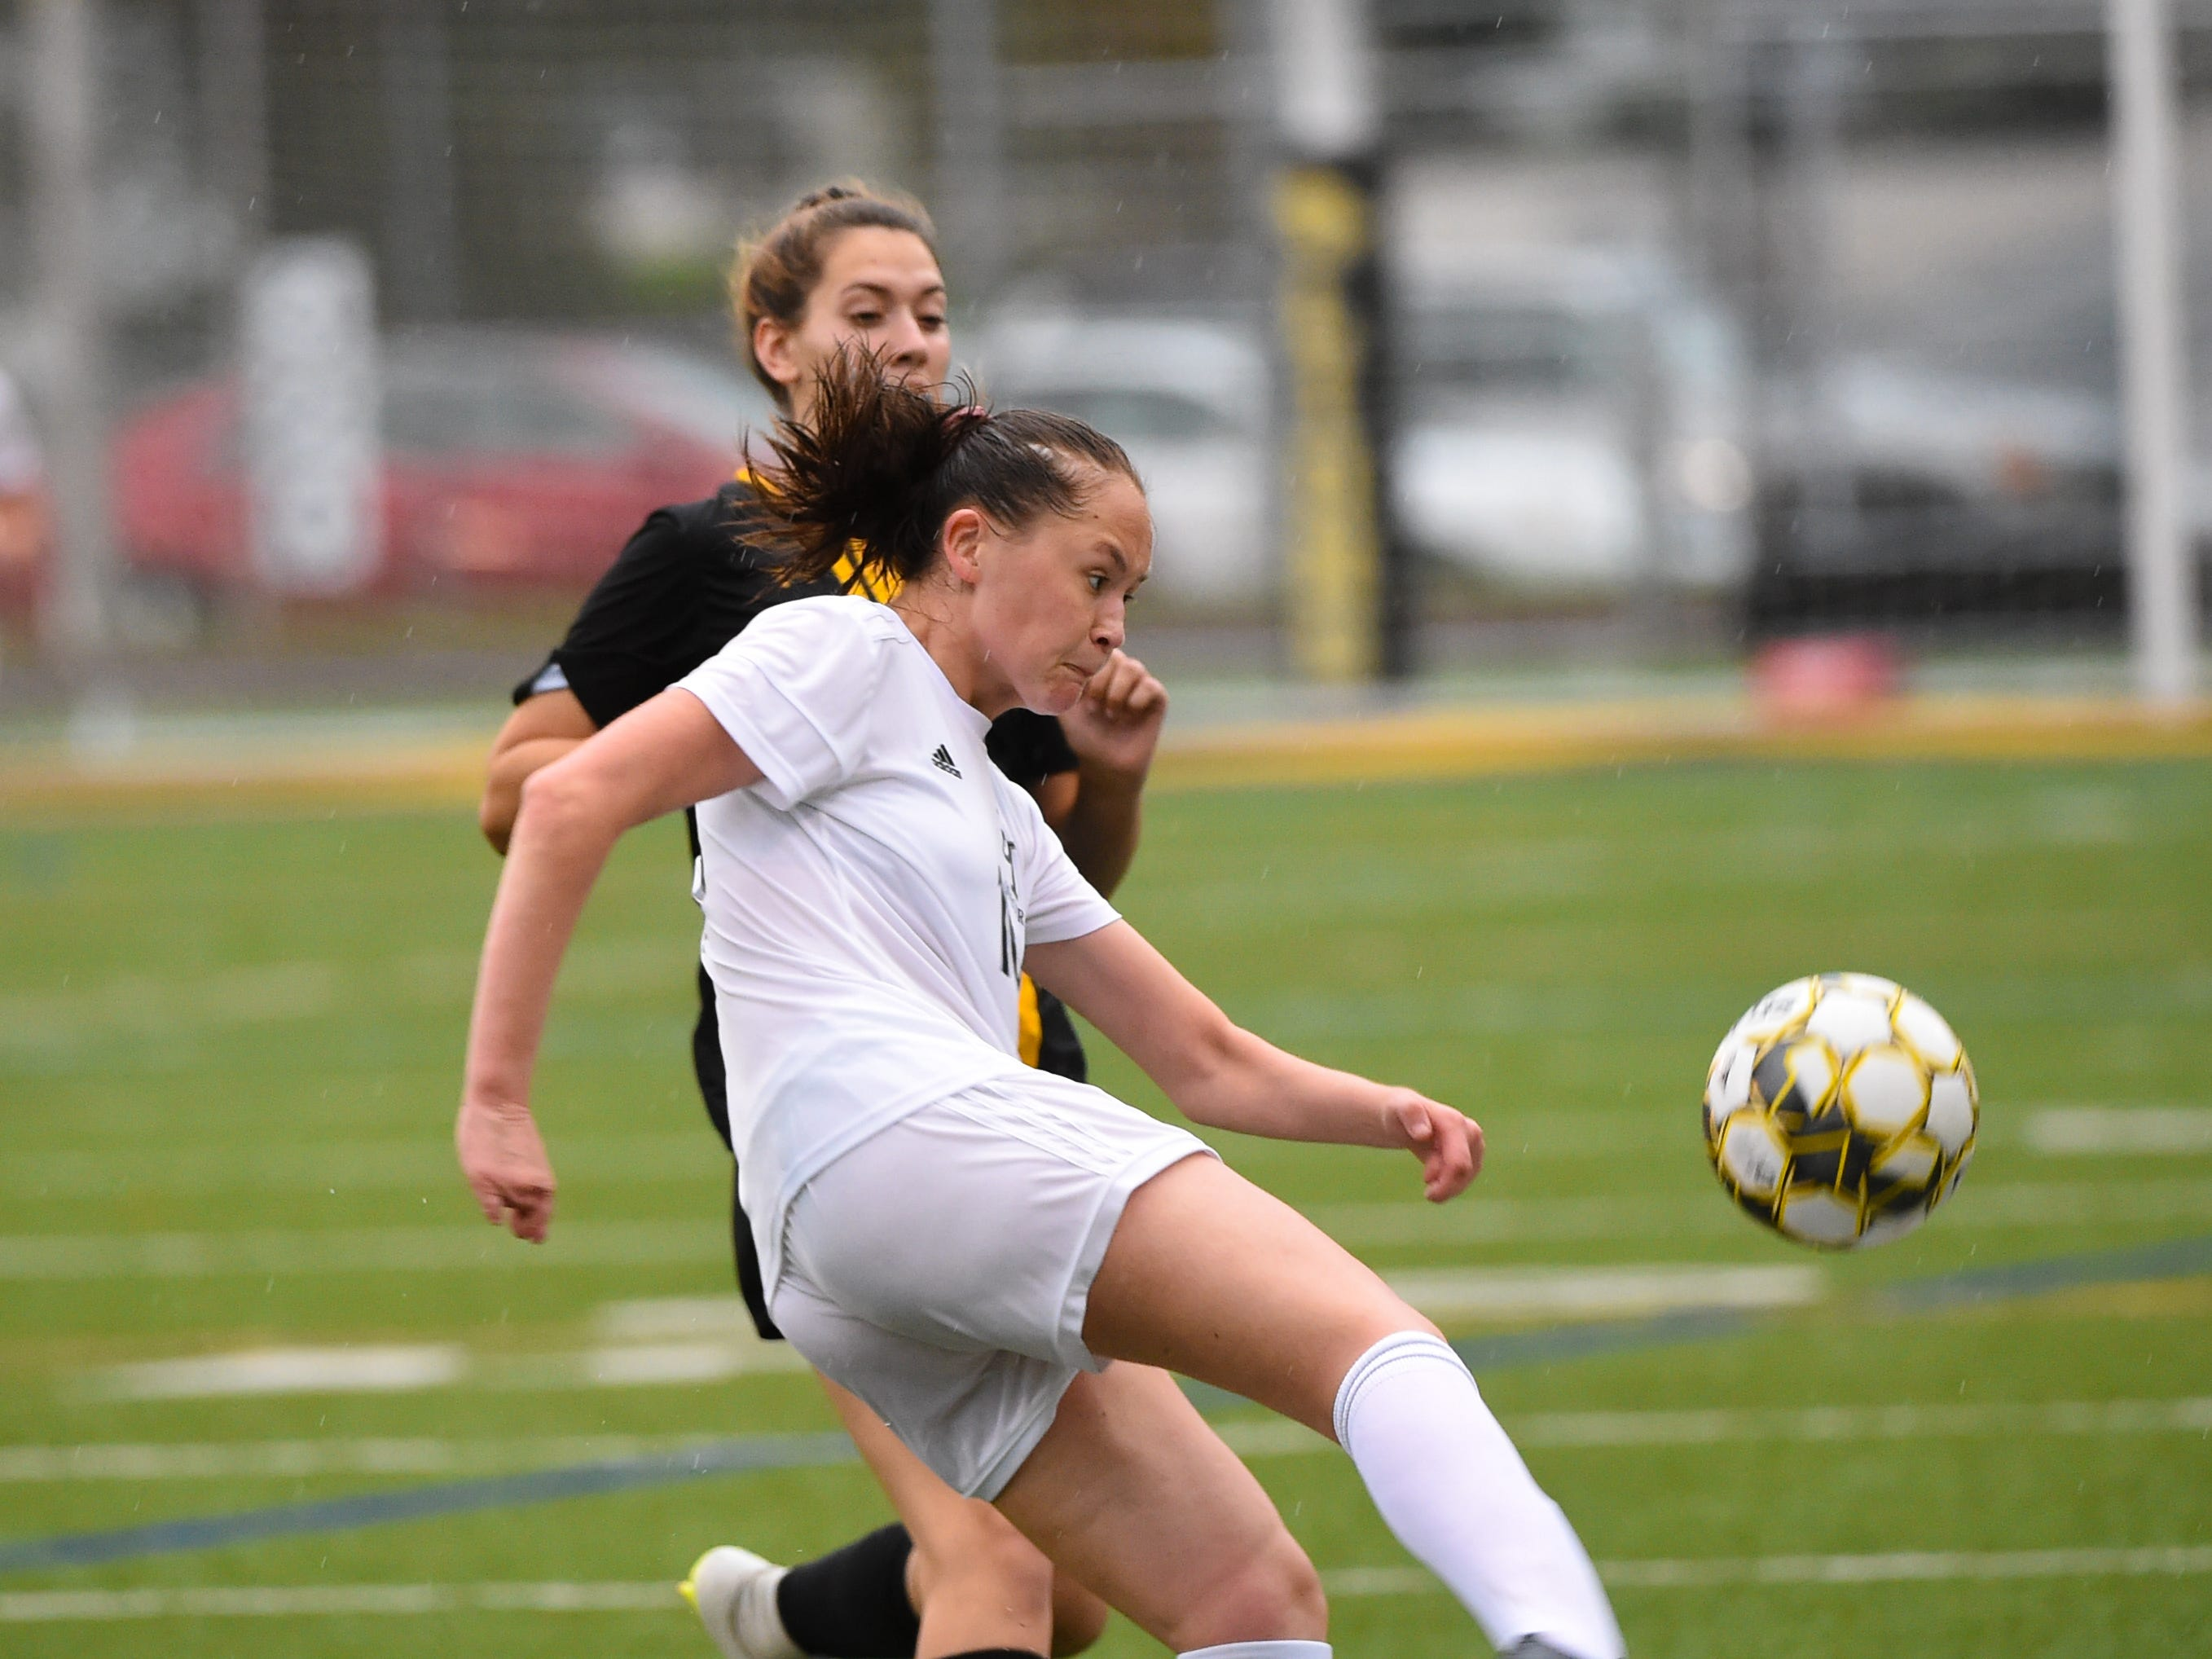 Lydia Jones (16) puts power behind her kick during the girls soccer game between Red Lion and Dallastown, October 11, 2018. The Lady Lions beat the Wildcats 4-0.